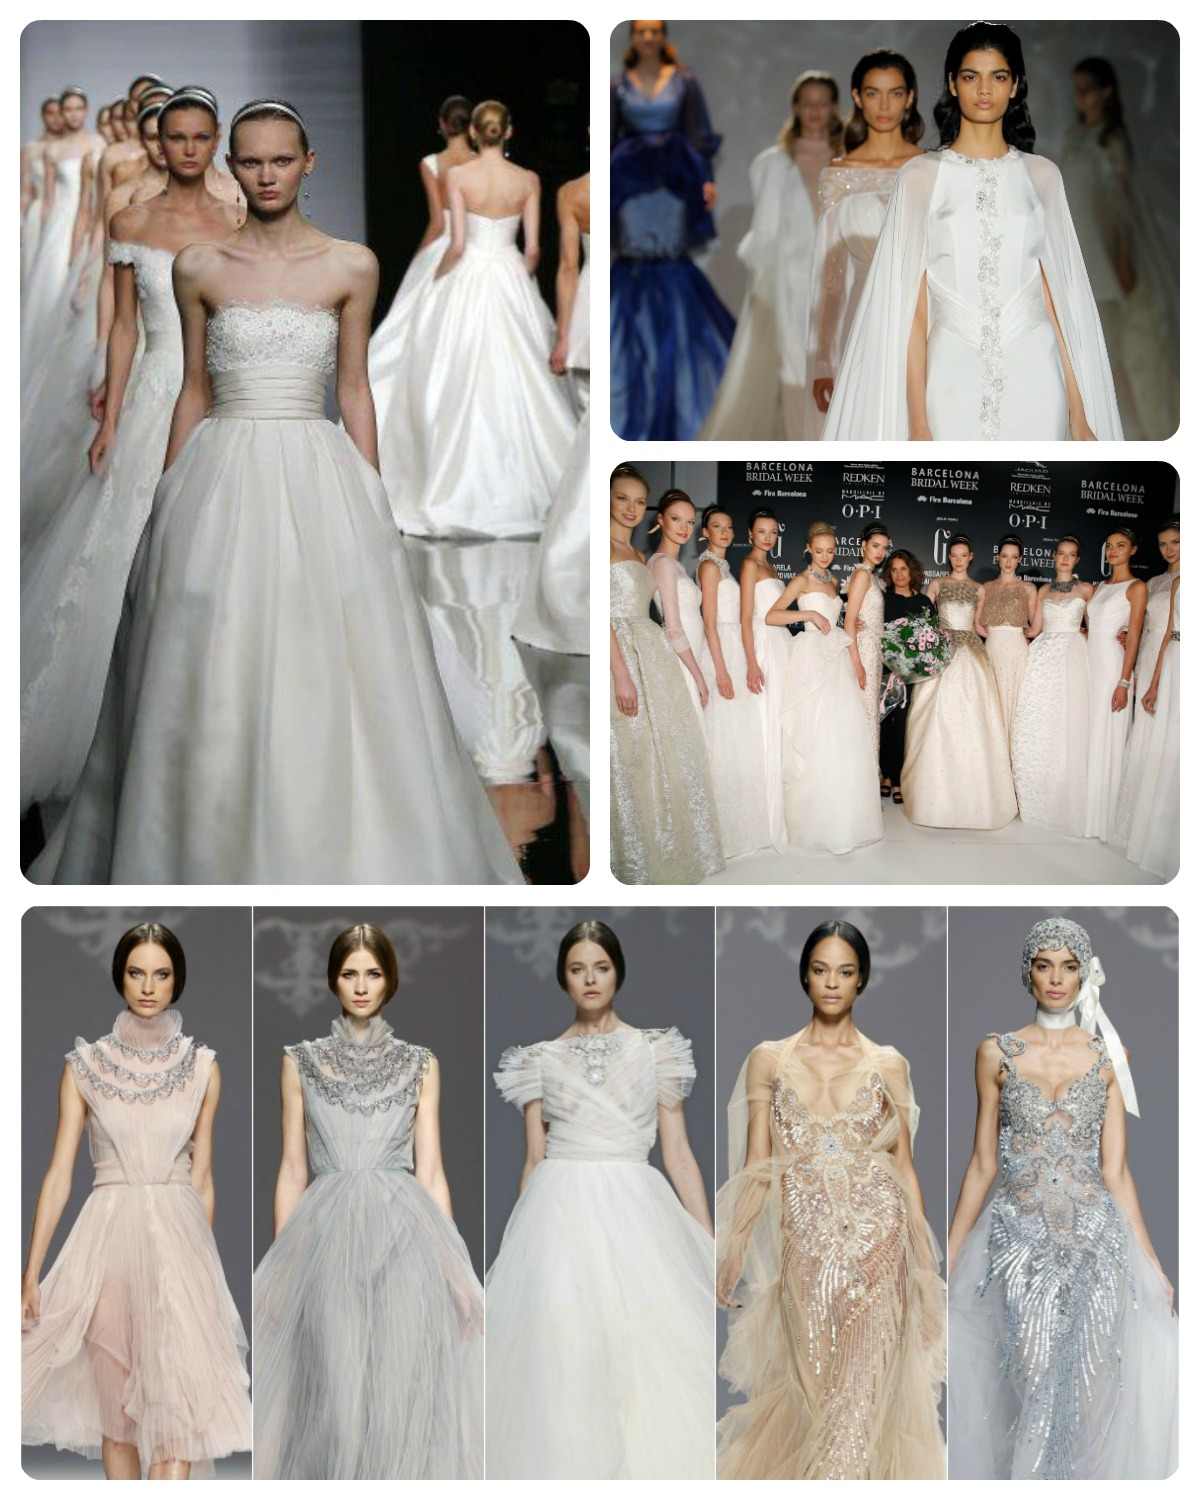 Barcelona Bridal Week - The biggest bridal event in the world